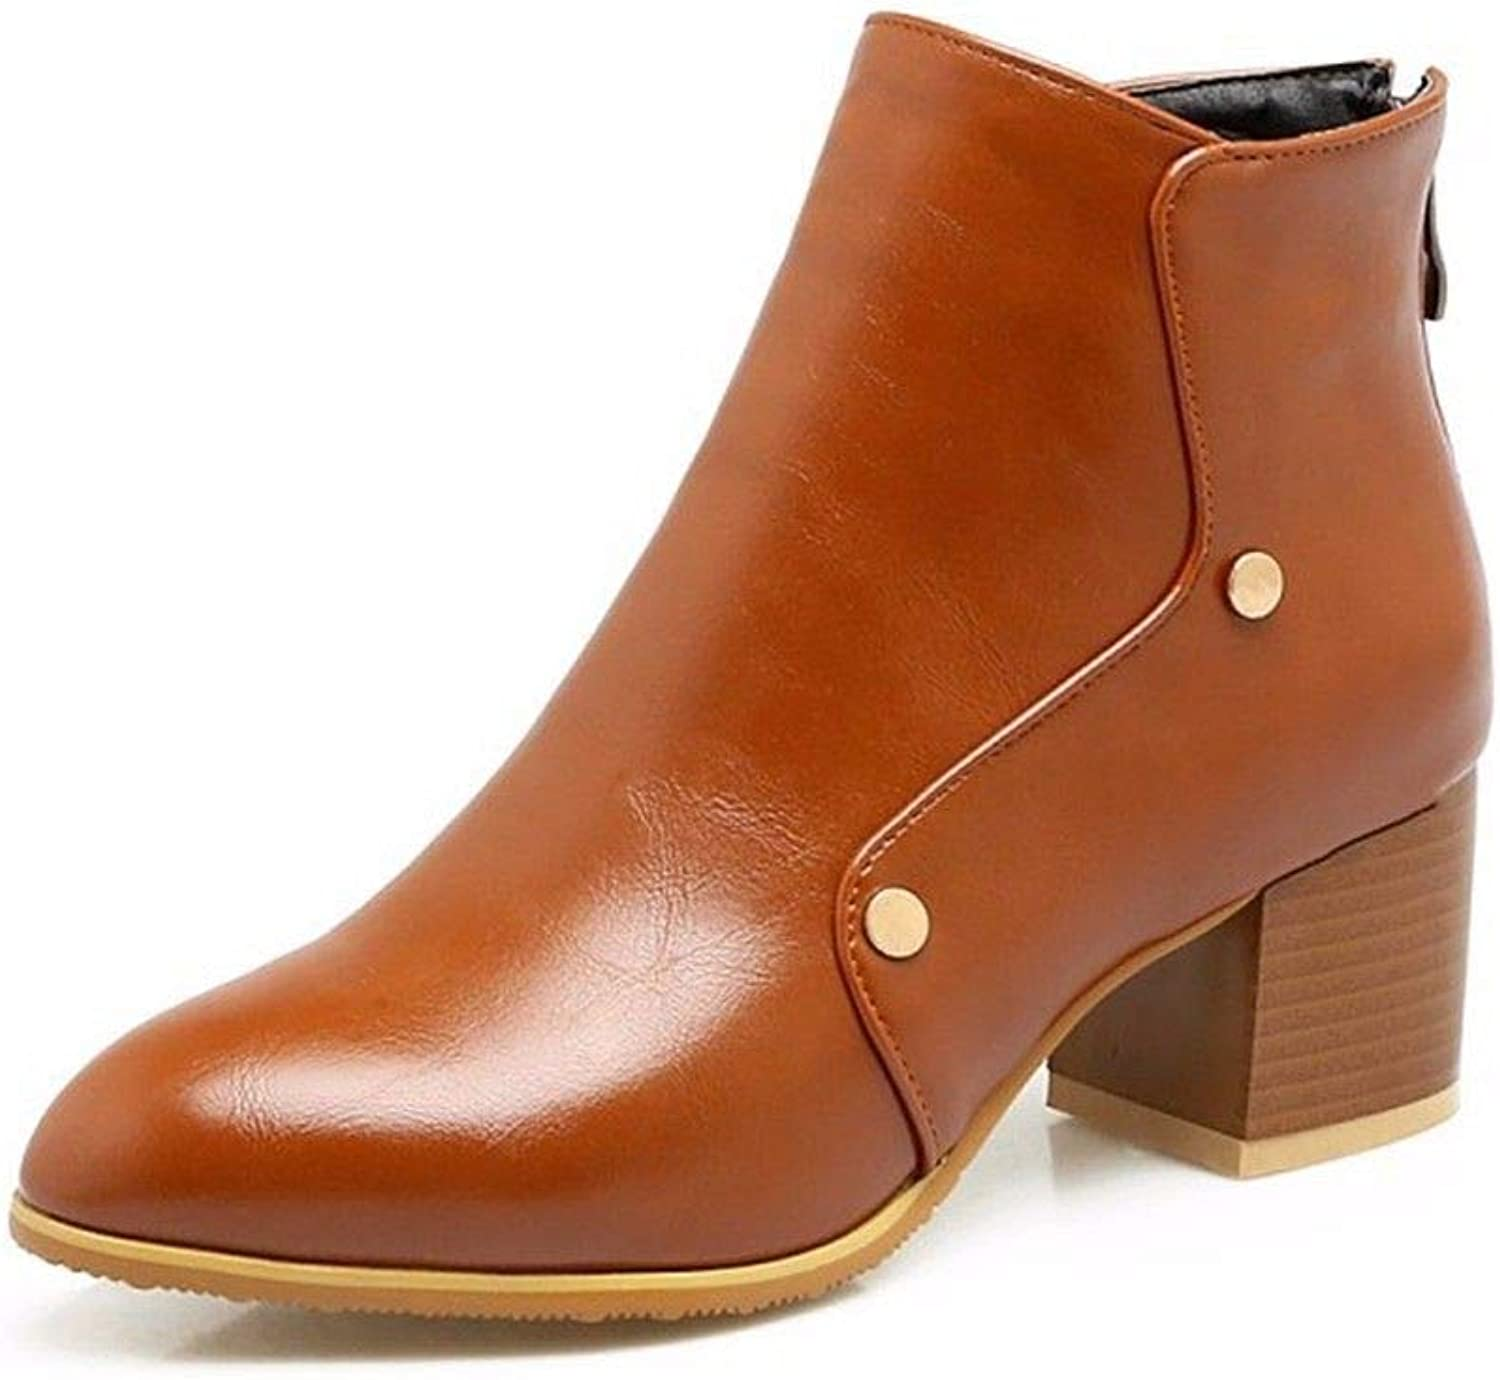 The Big Heel and Short Boots of The Heel Heel Lady in Autumn and Winter Pu